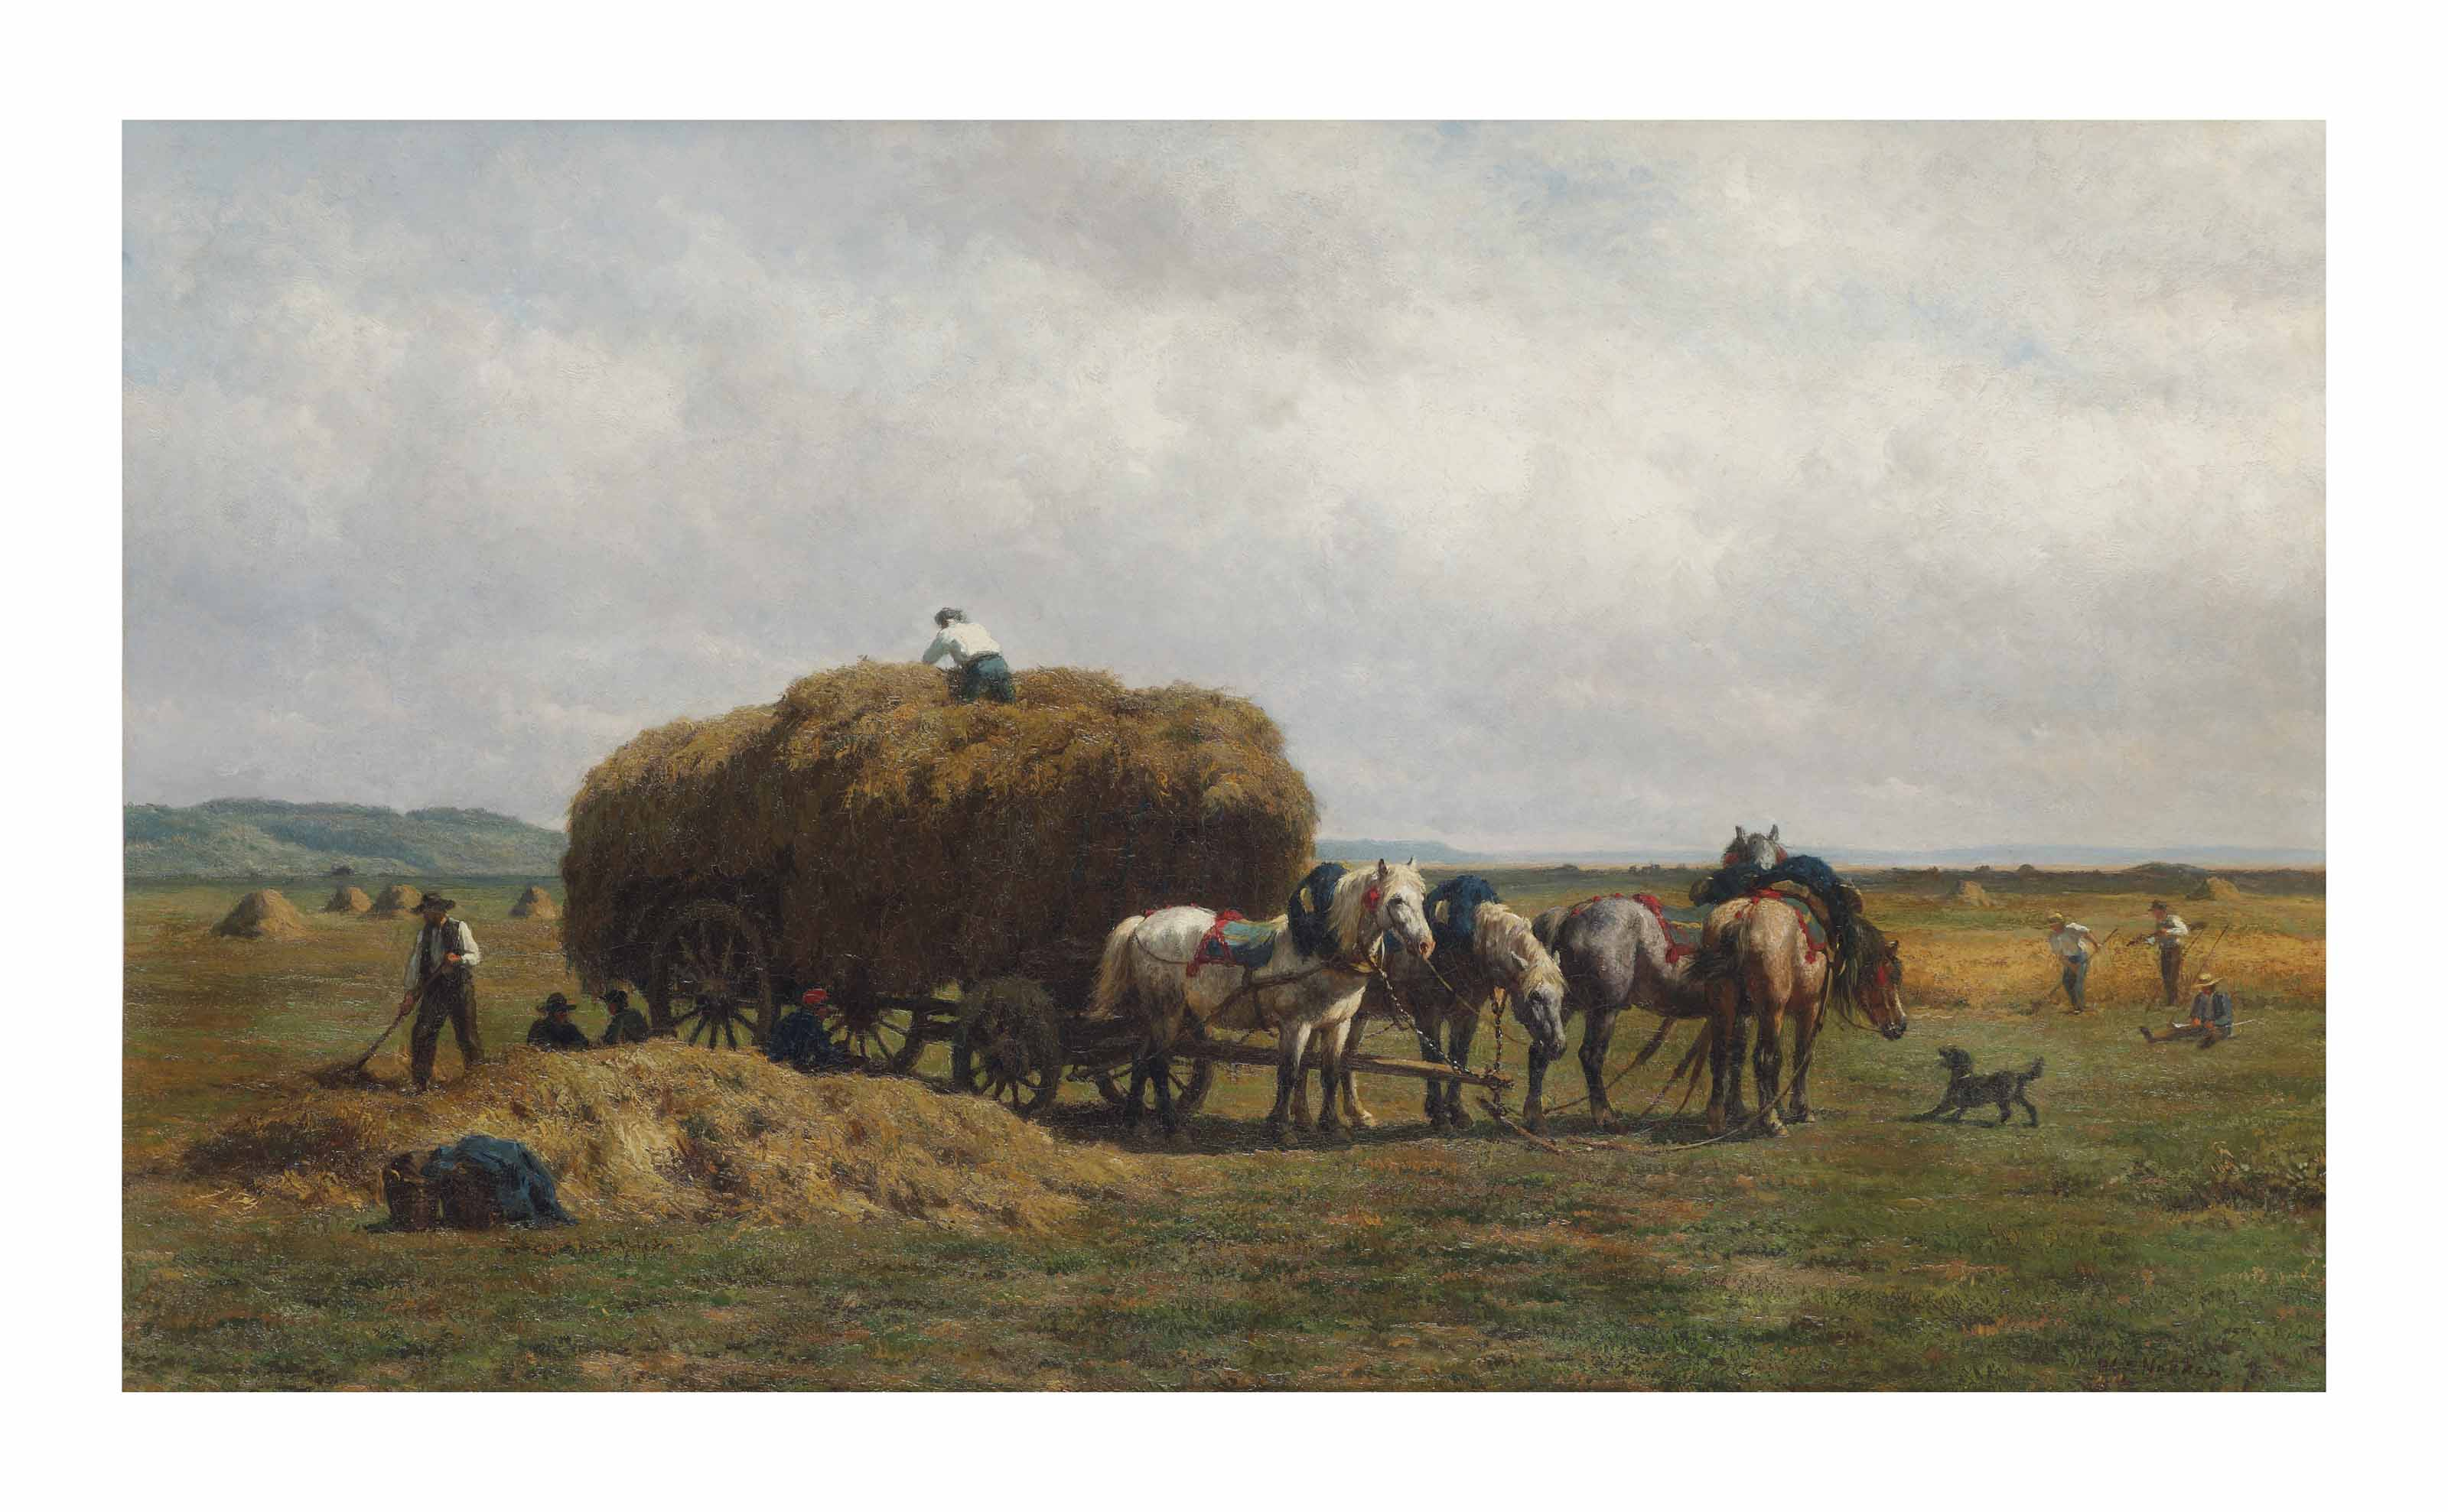 Loading the hay wagon